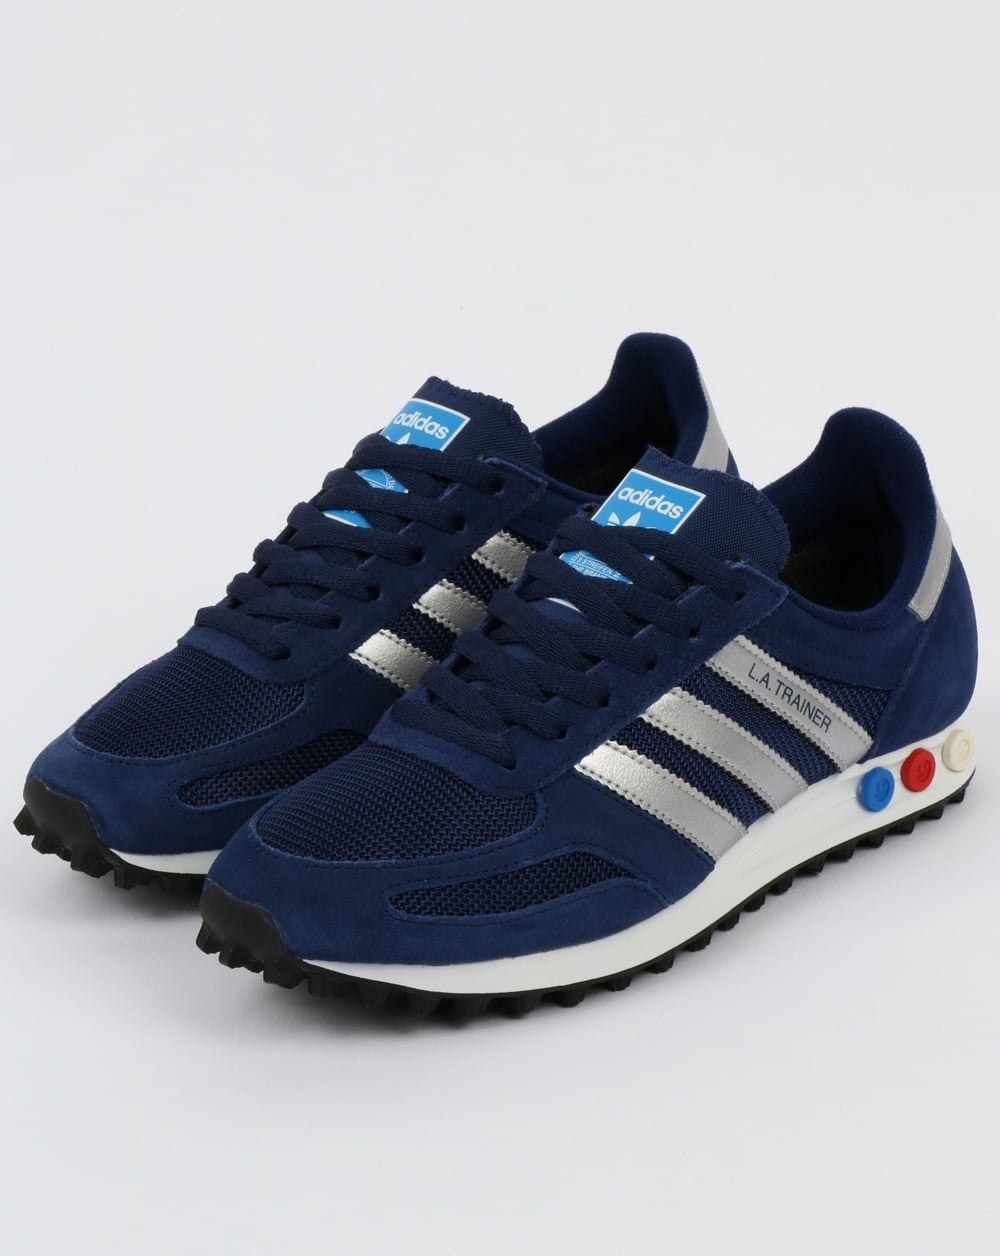 Adidas LA Trainer Dark Blue/Silver/Grey